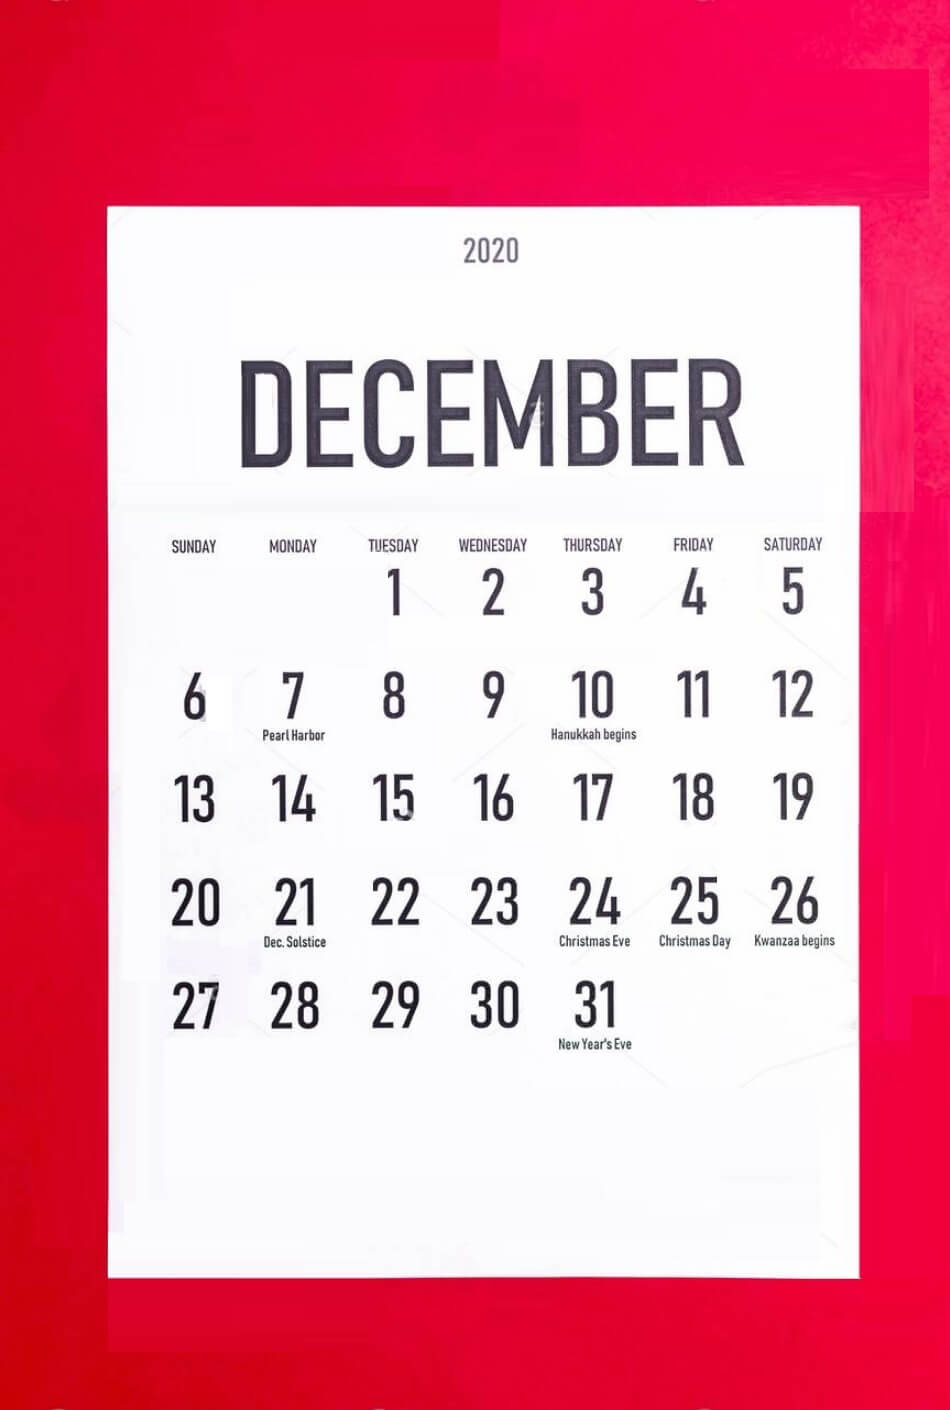 December 2020 Holidays Calendar Design